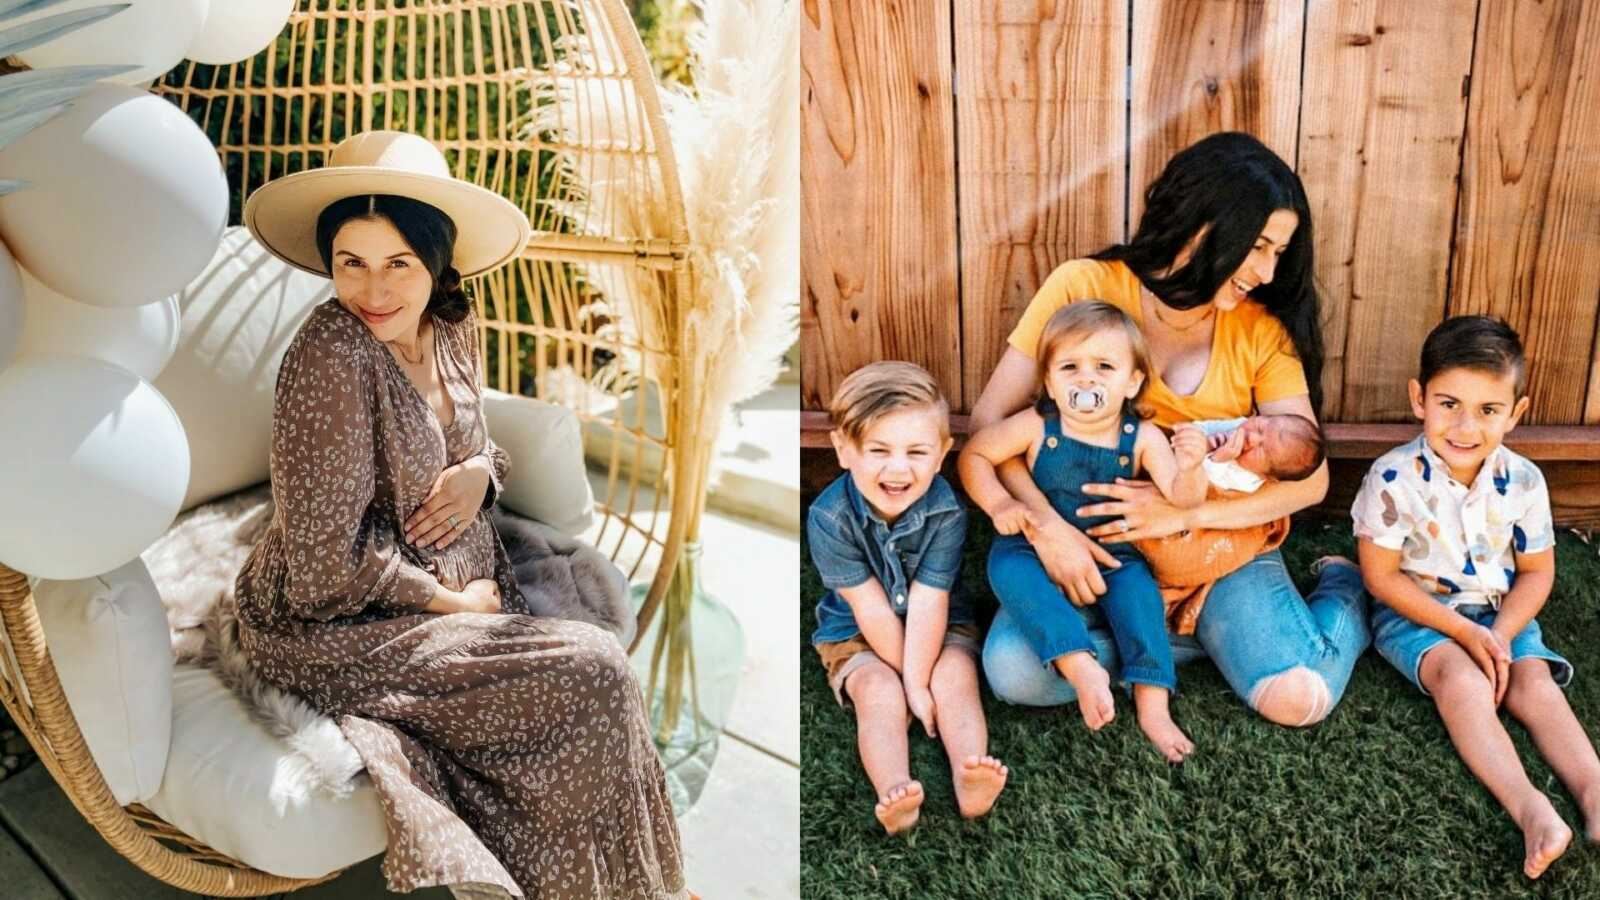 Woman takes a photo while pregnant with her fourth child, then with her four sons after giving birth